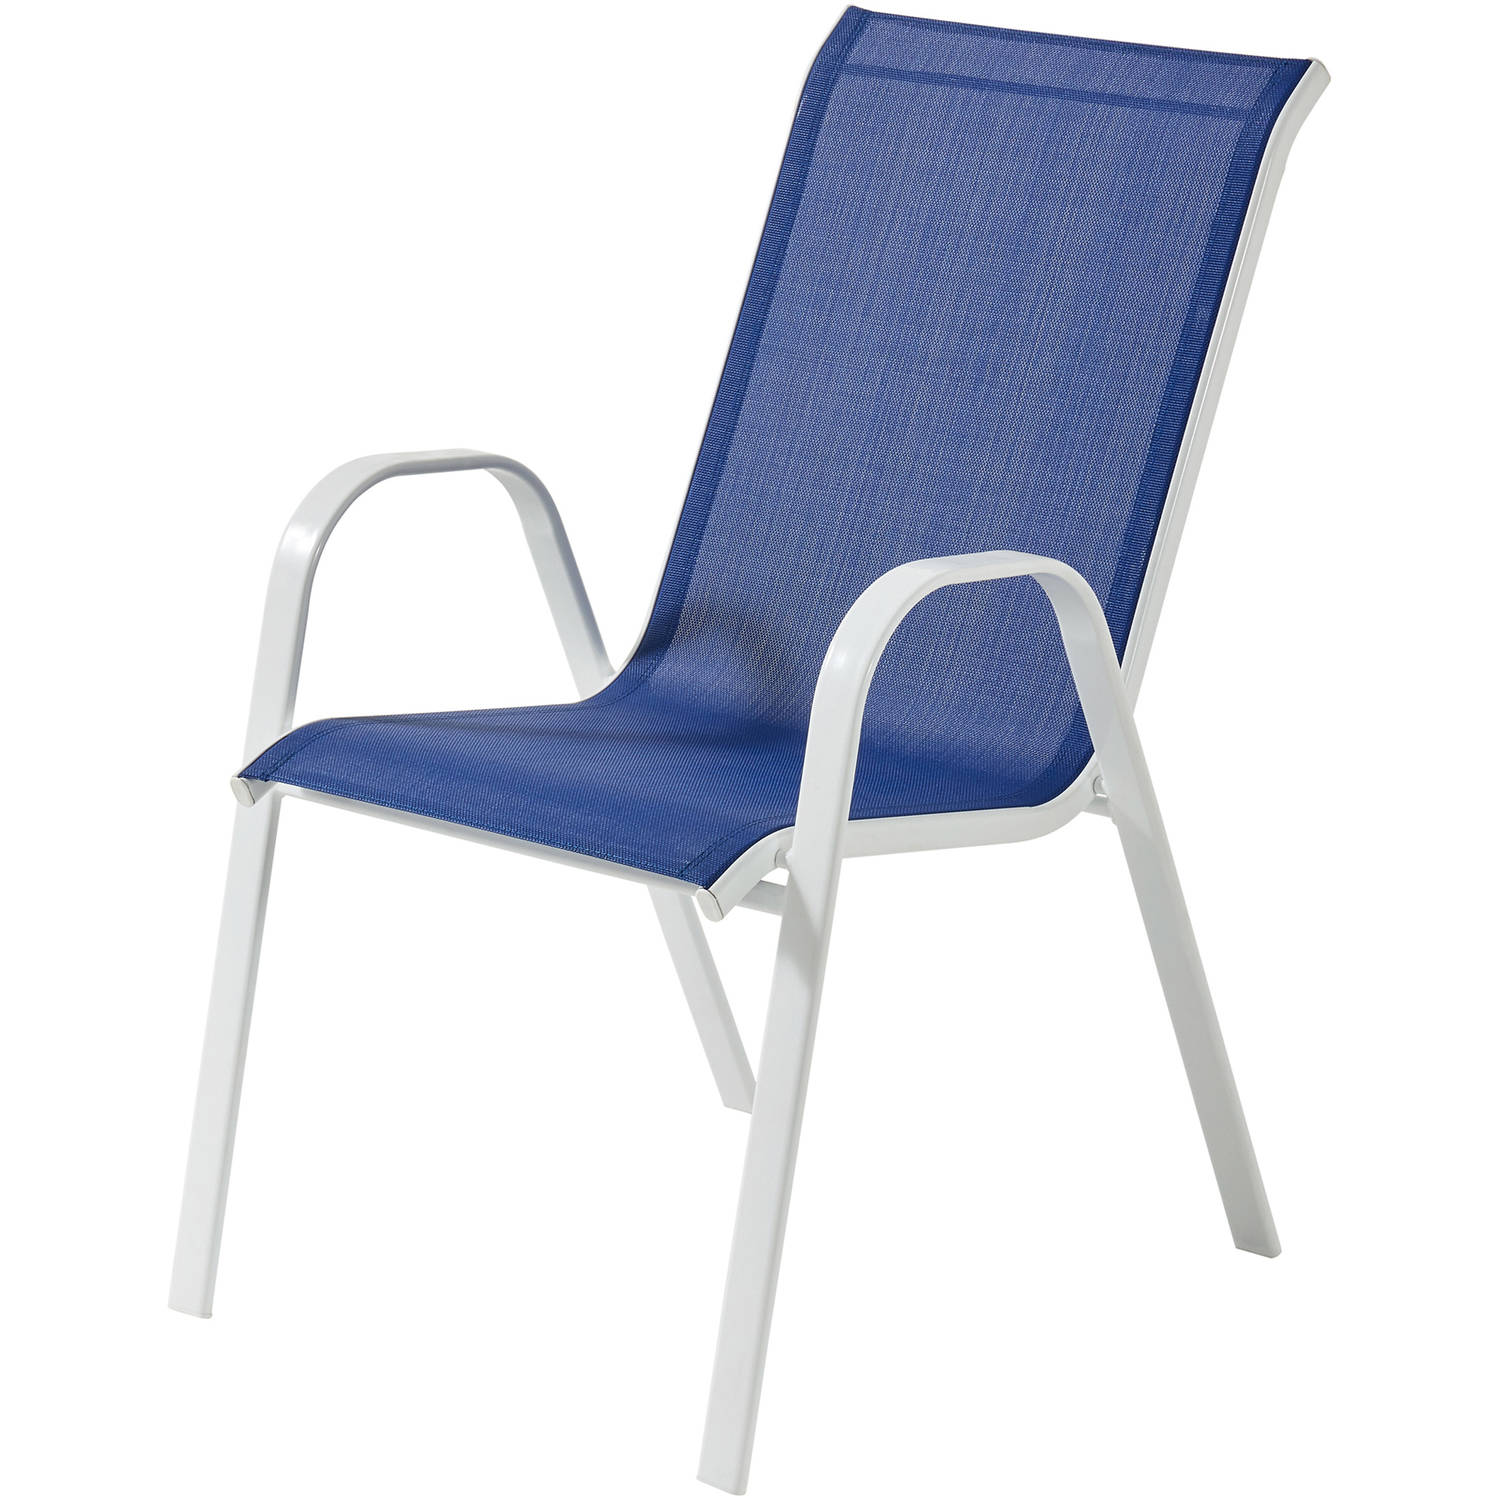 Mainstays Heritage Park Stacking Sling Chair, Royal Blue